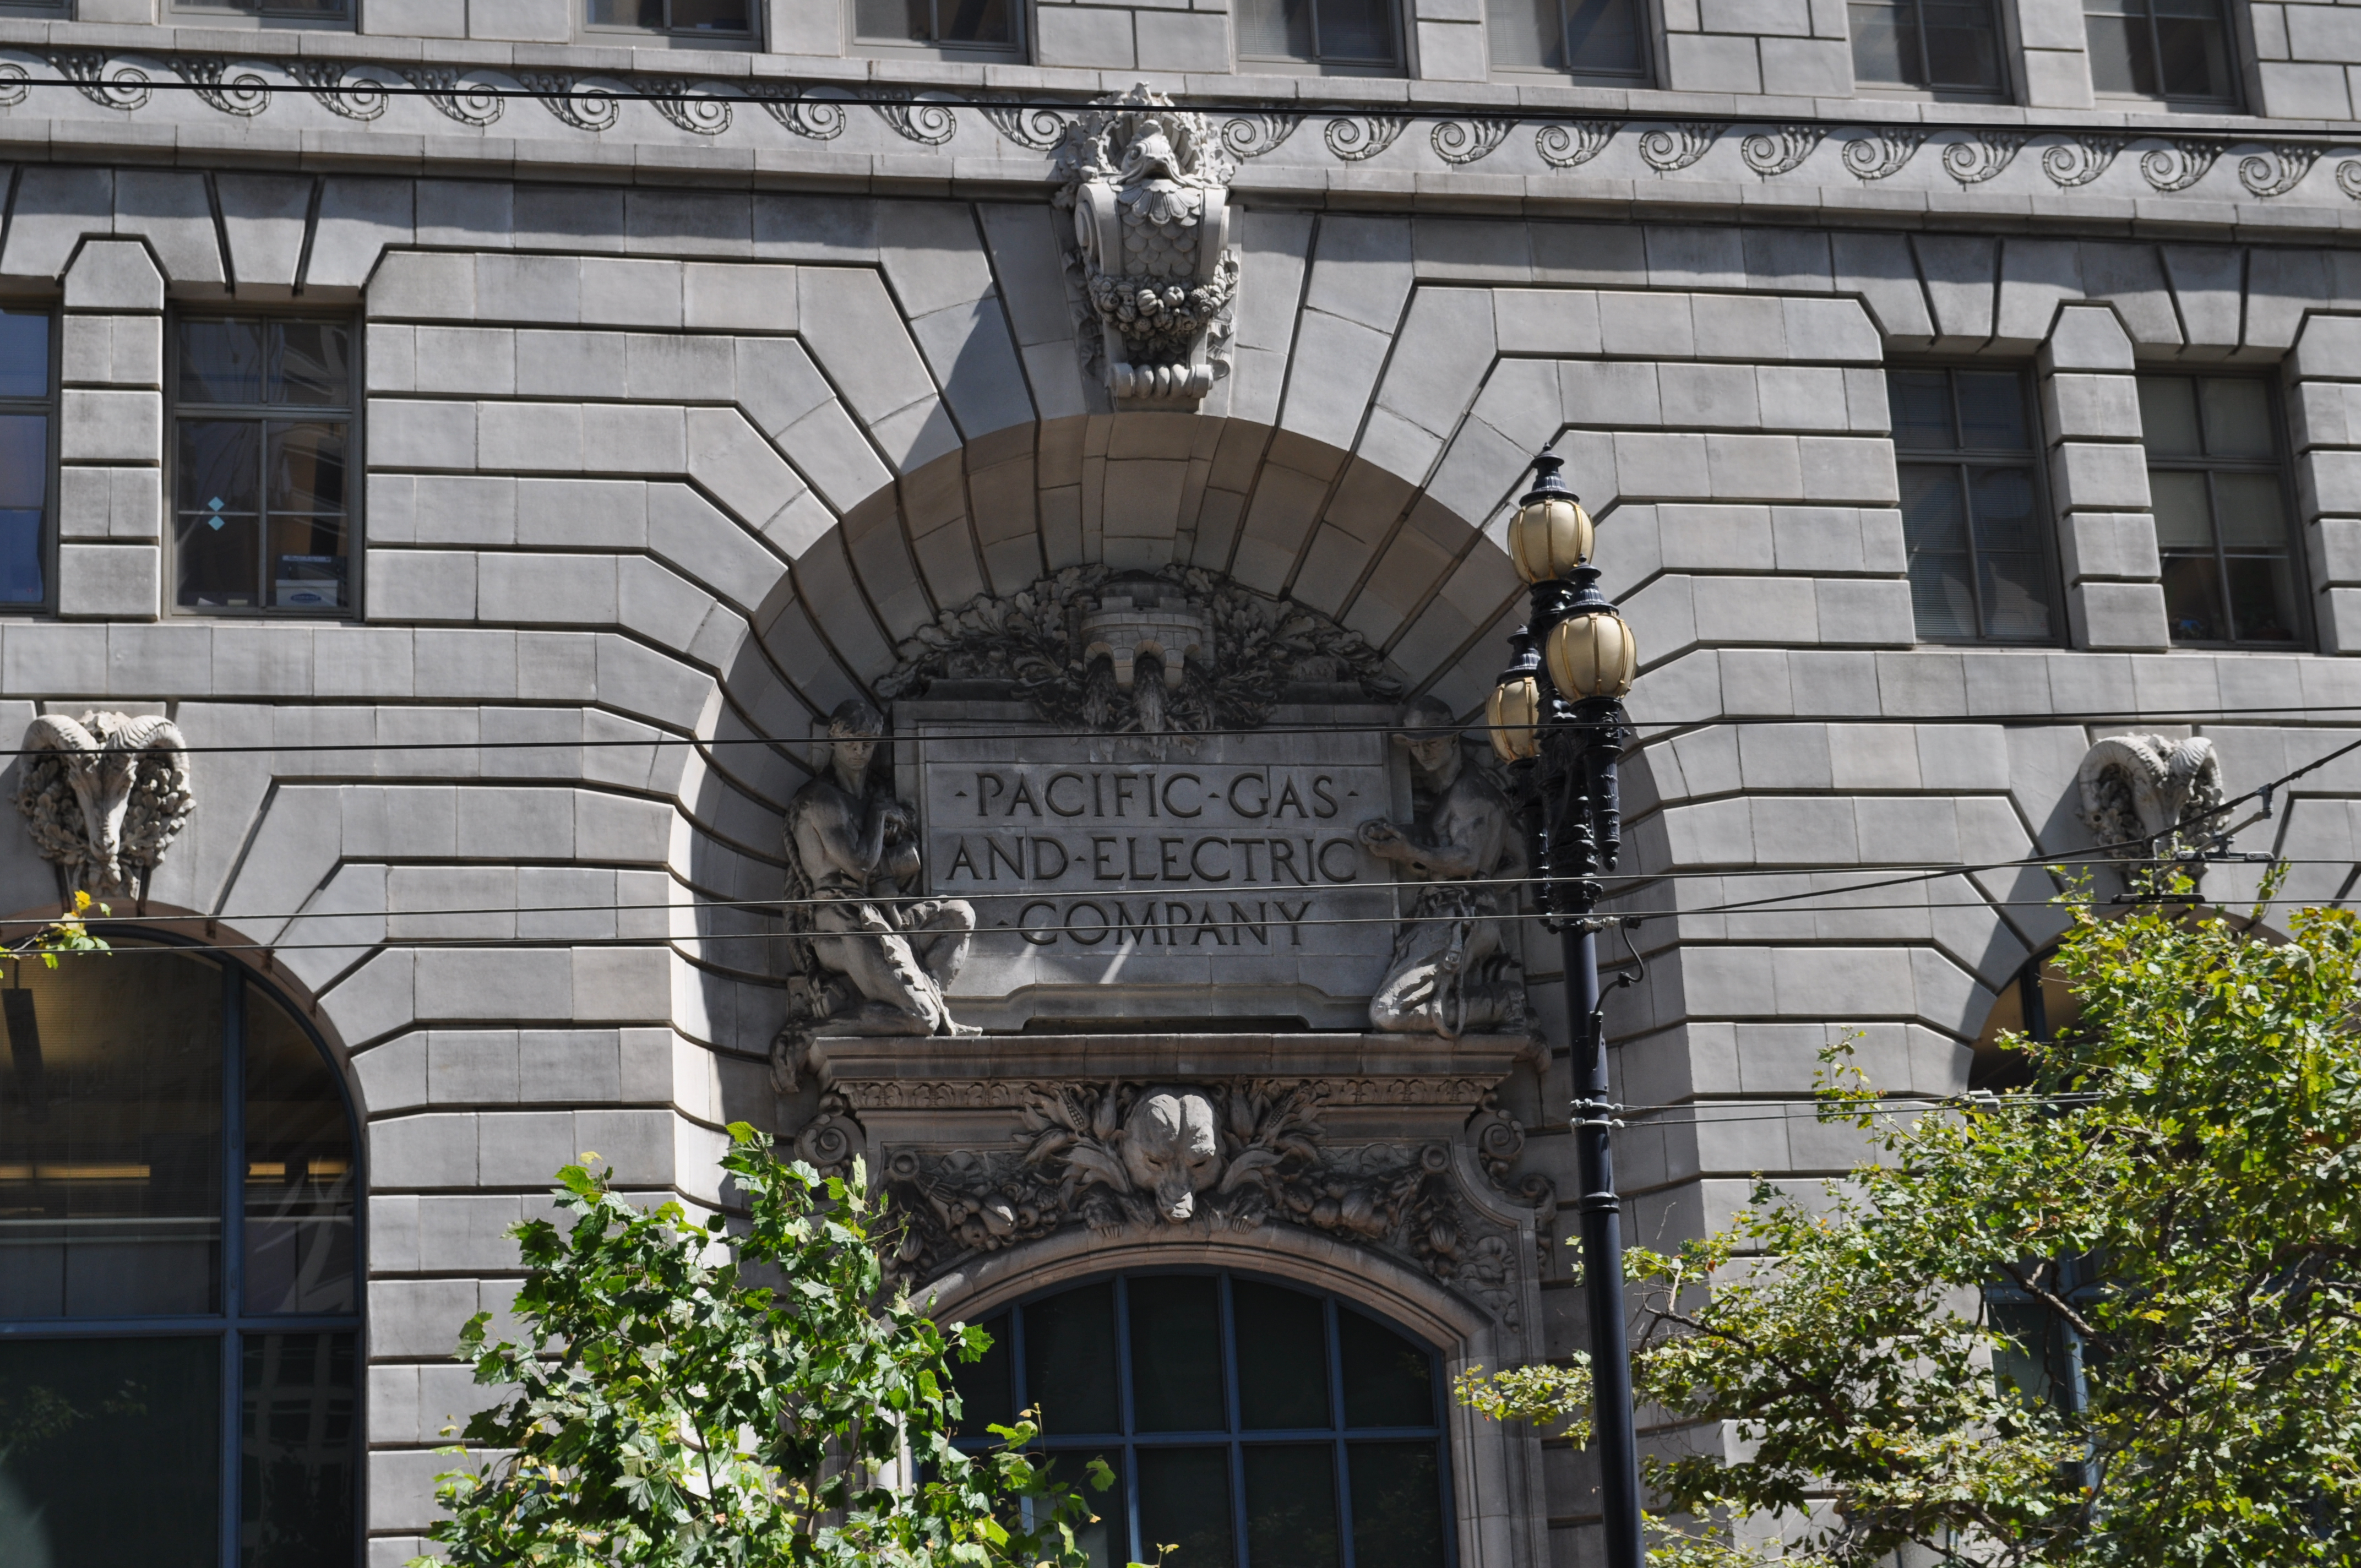 Image result for PHOTOS OF Pacific Gas and Electric BUILDING